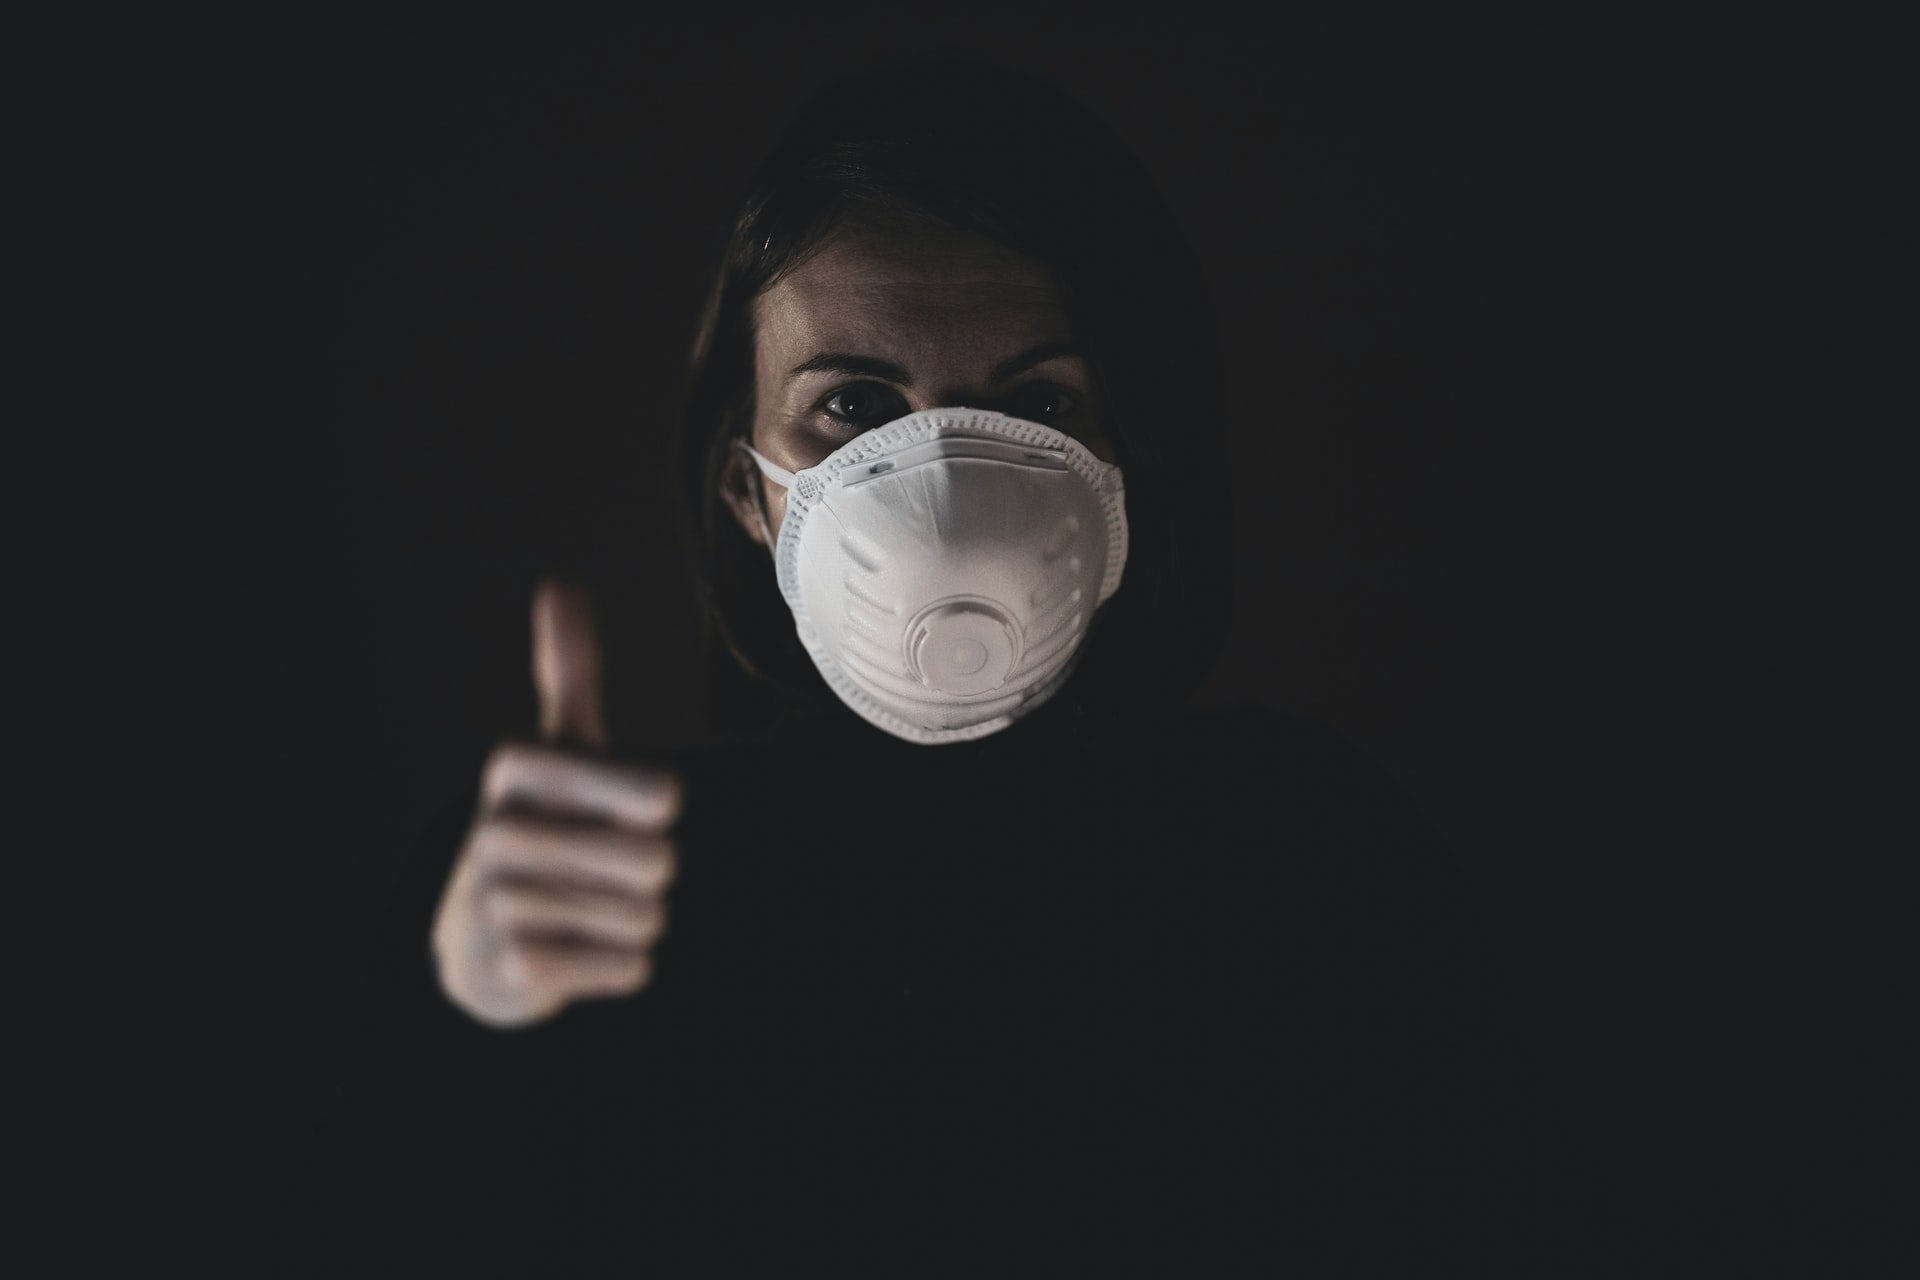 A person wearing an N95 mask and making a thumbs up